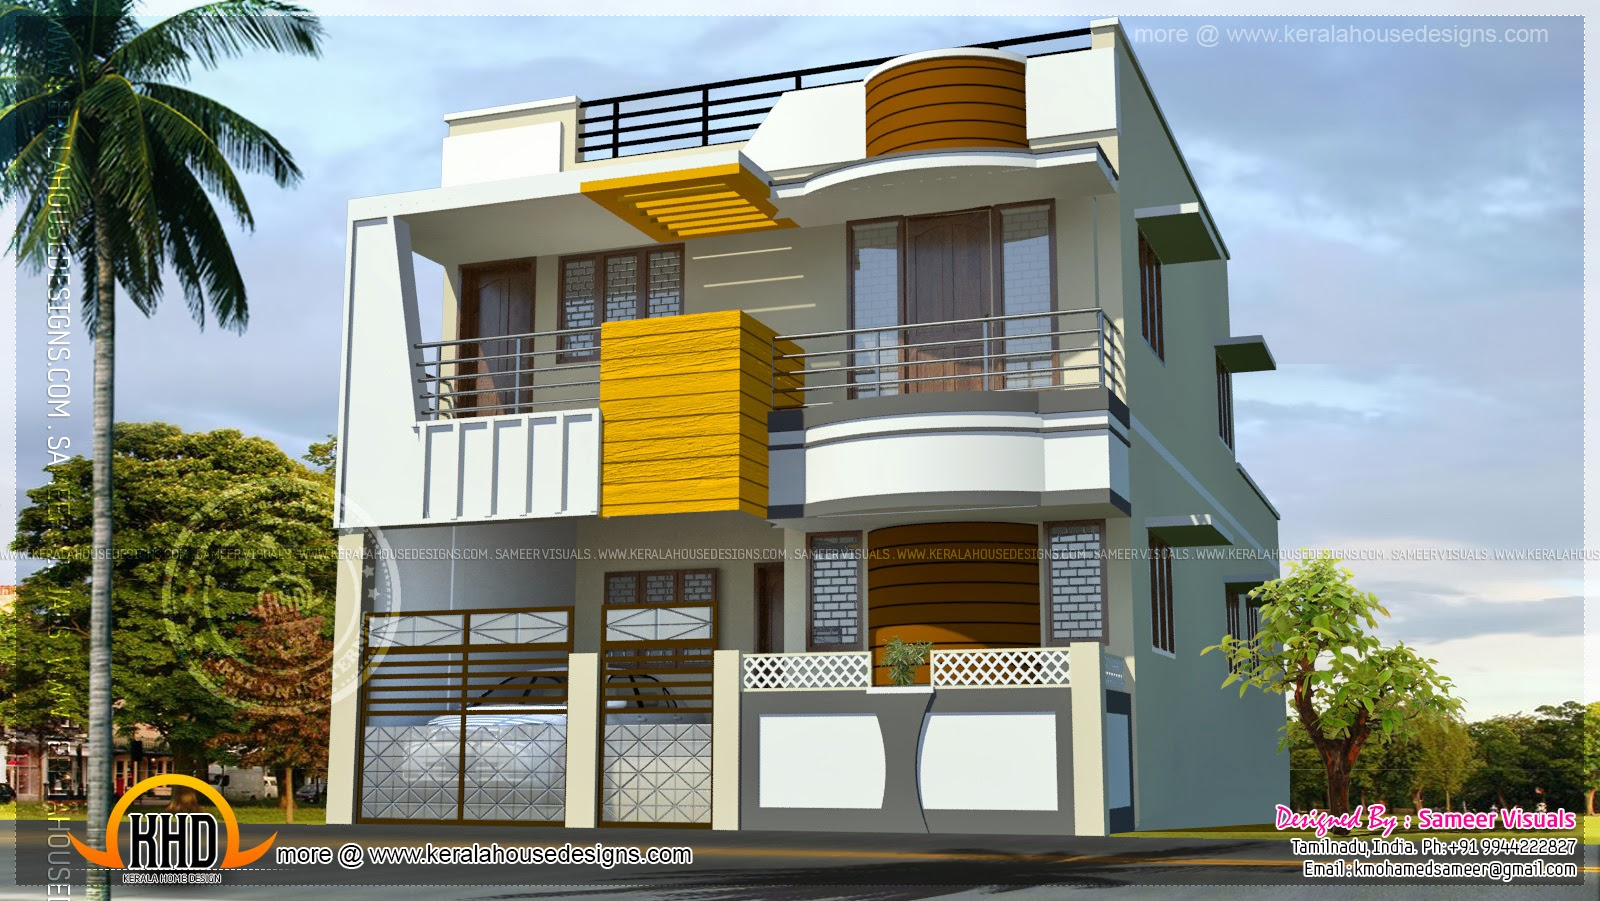 January 2014 kerala home design and floor plans for Indian small house designs photos